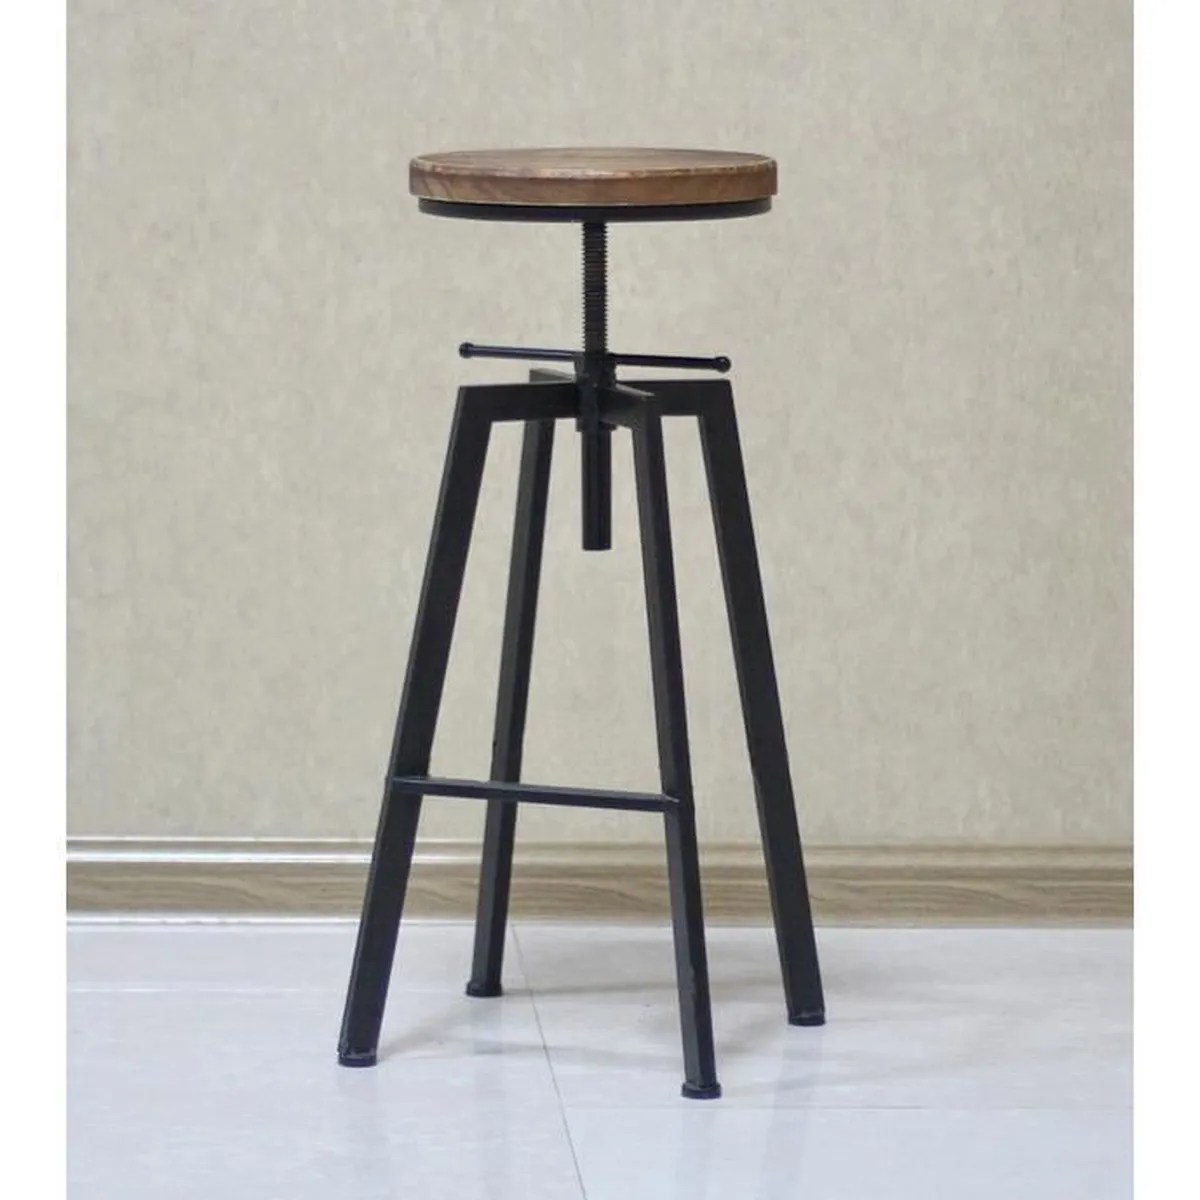 Lot De 2 Tabourets De Bar Smiley Tabouret De Bar Industriel Lot De 4 Achat Vente